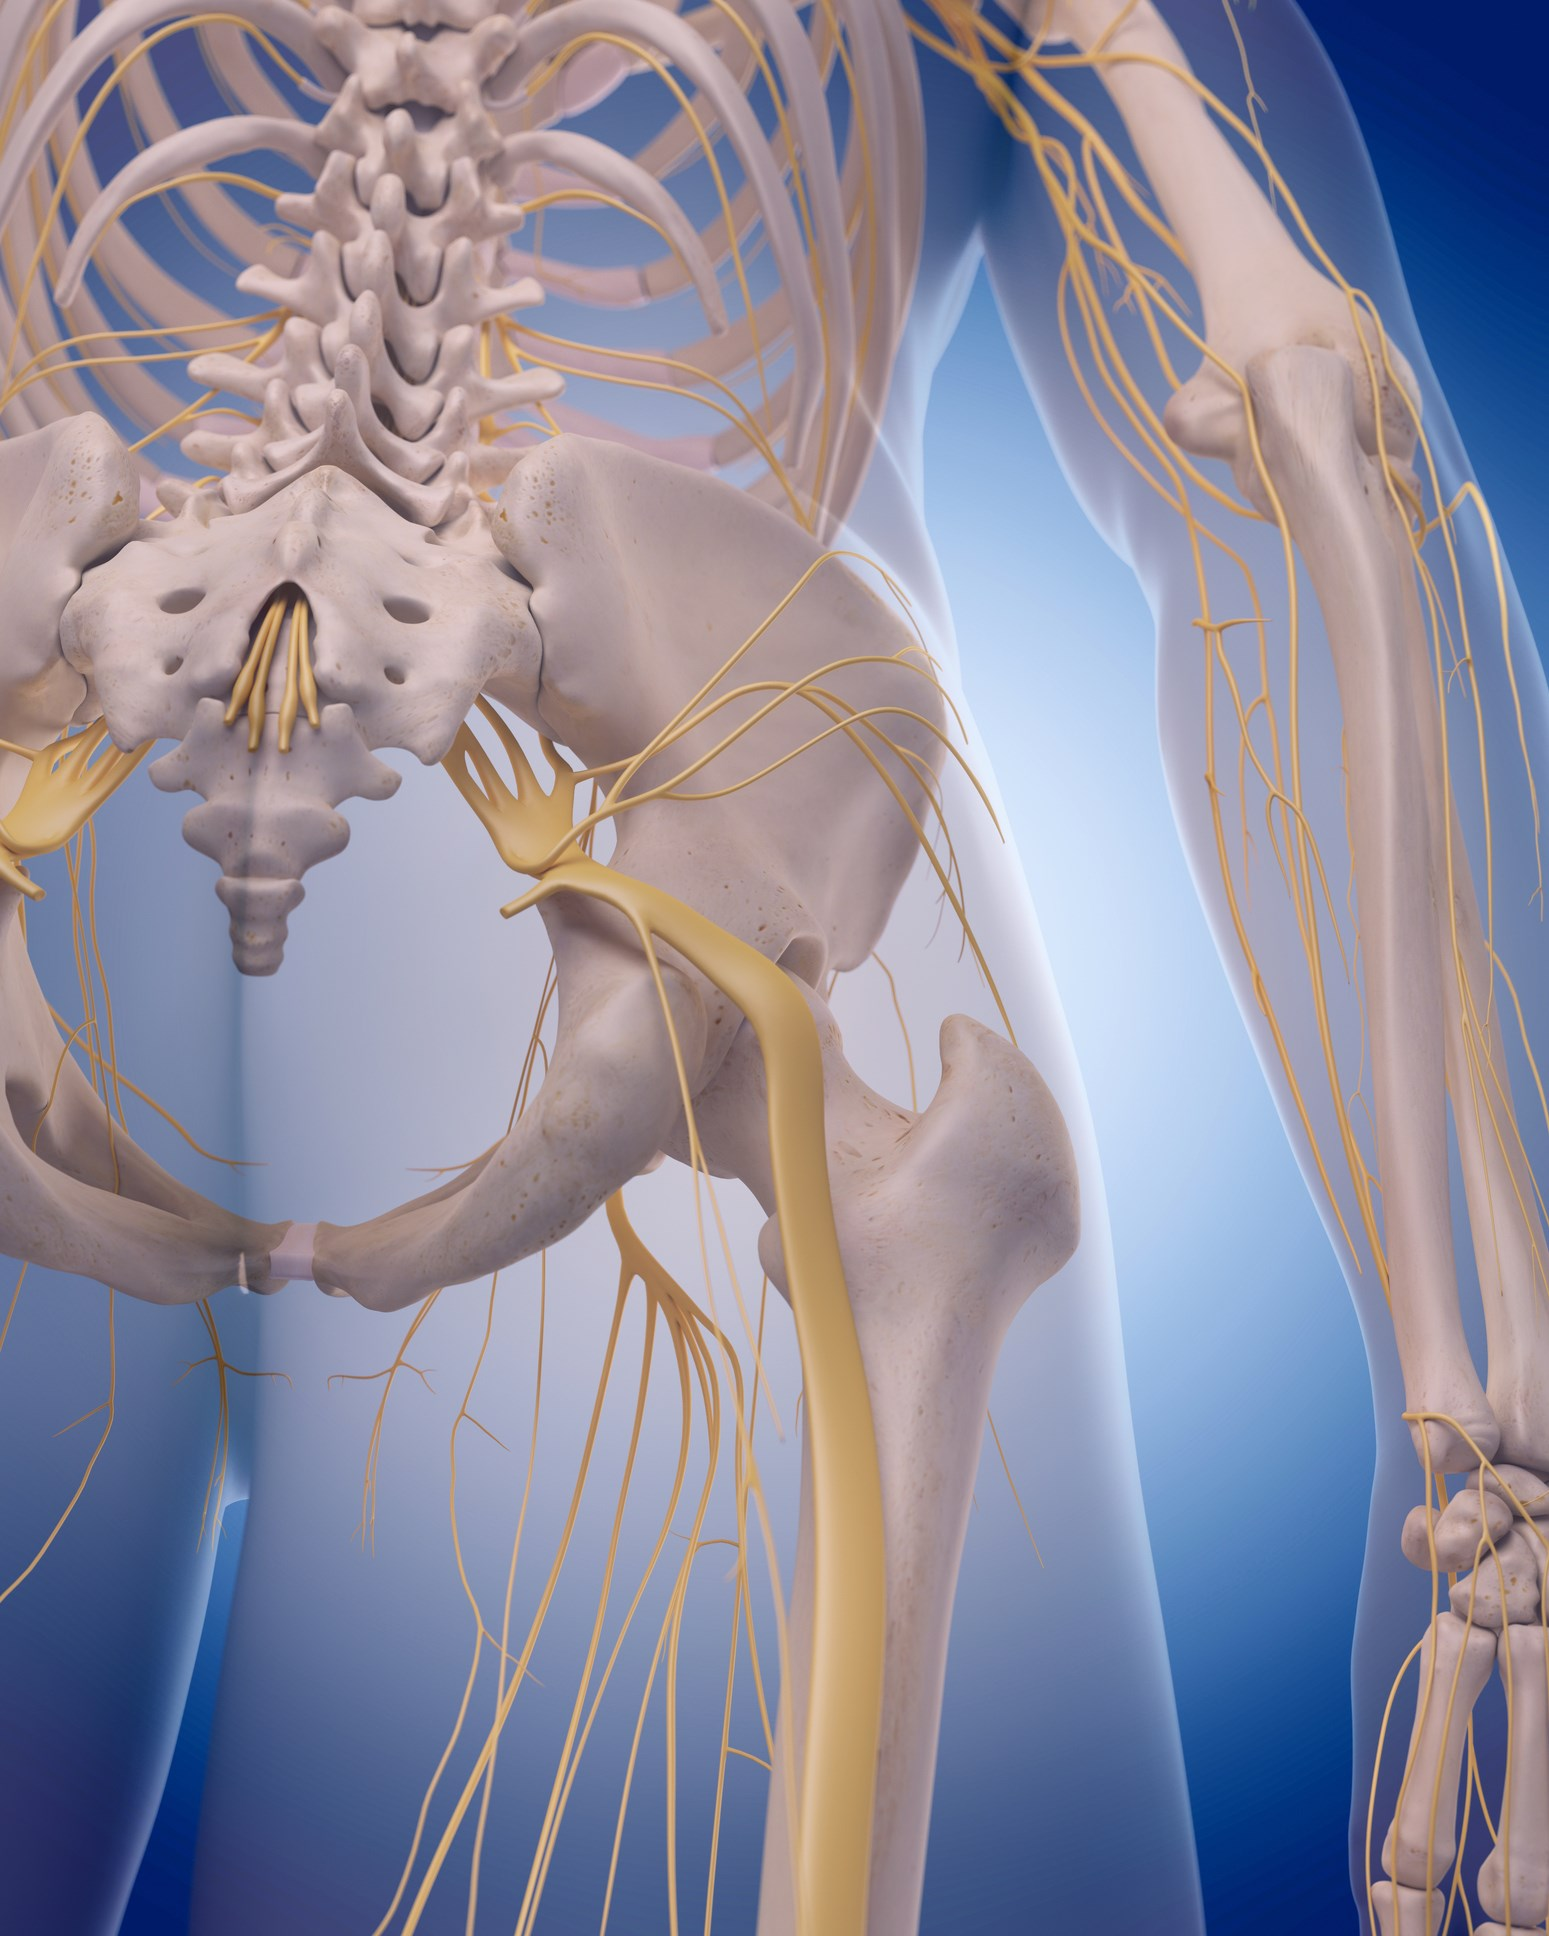 Pregabalin for Sciatica: Is It Effective?